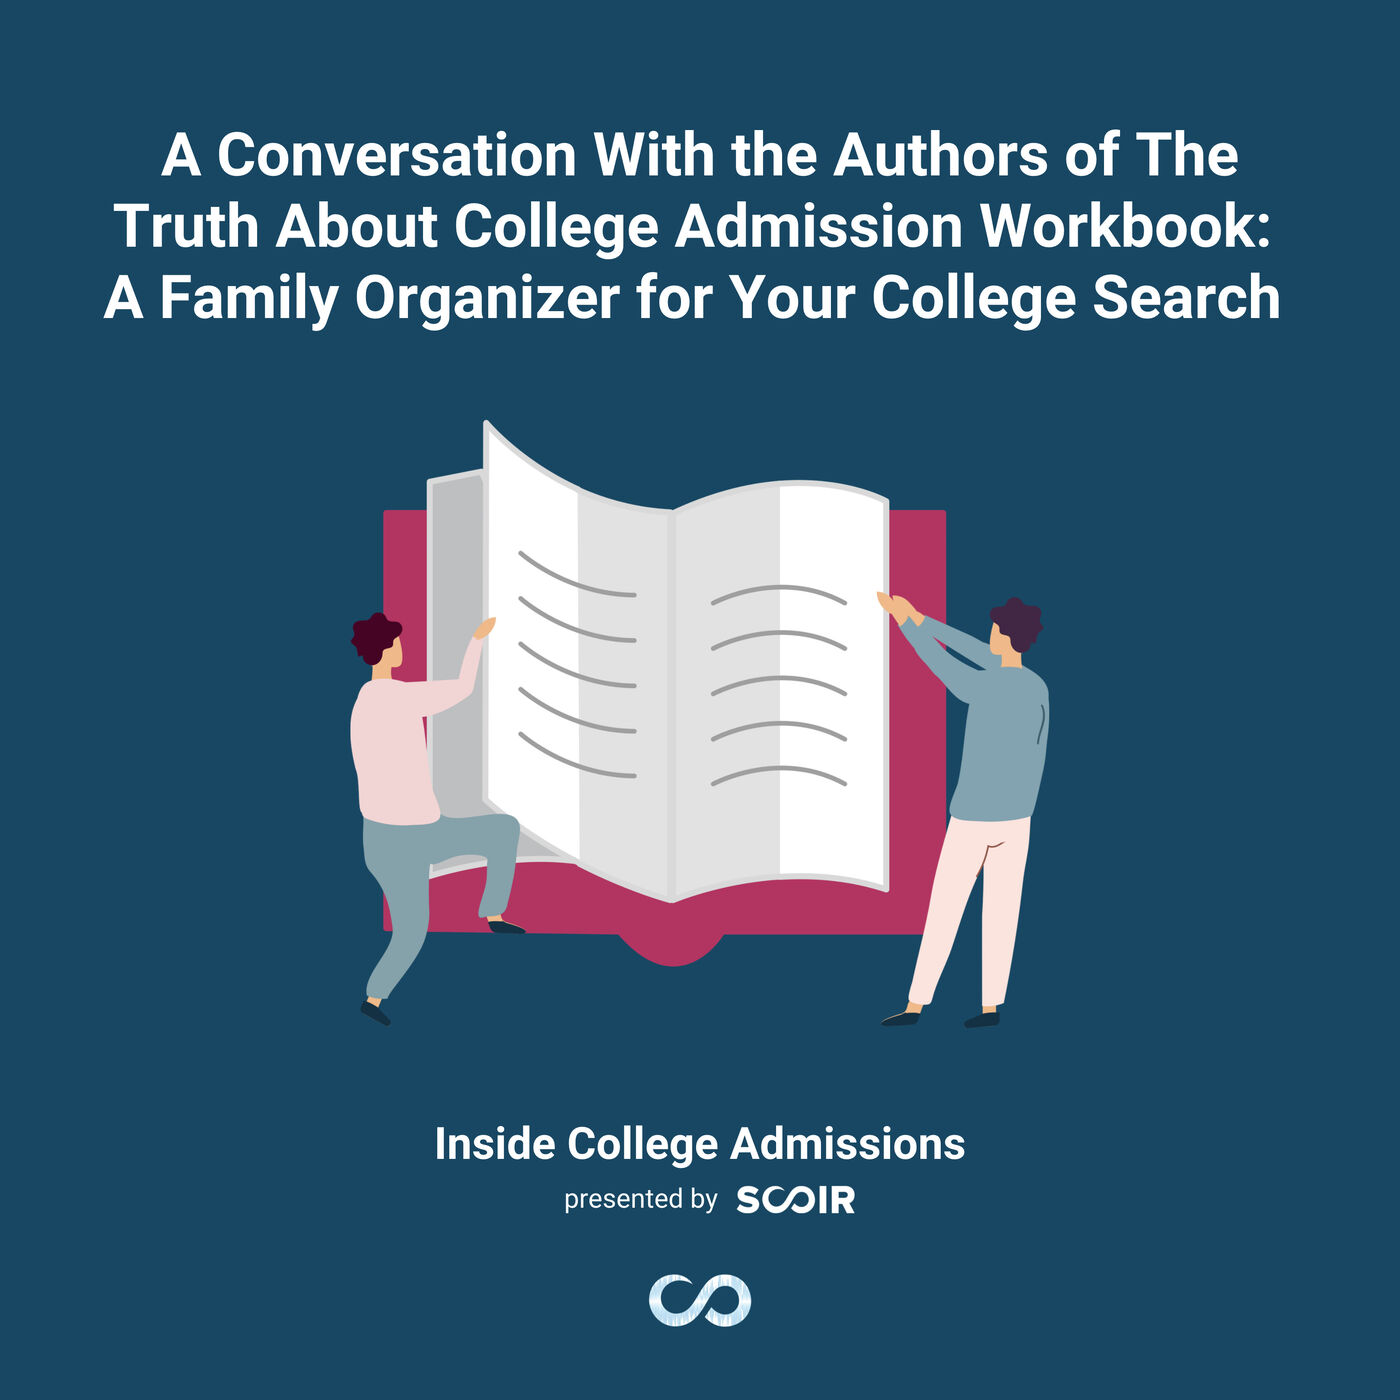 A Conversation With the Authors of The Truth About College Admission Workbook: A Family Organizer for Your College Search